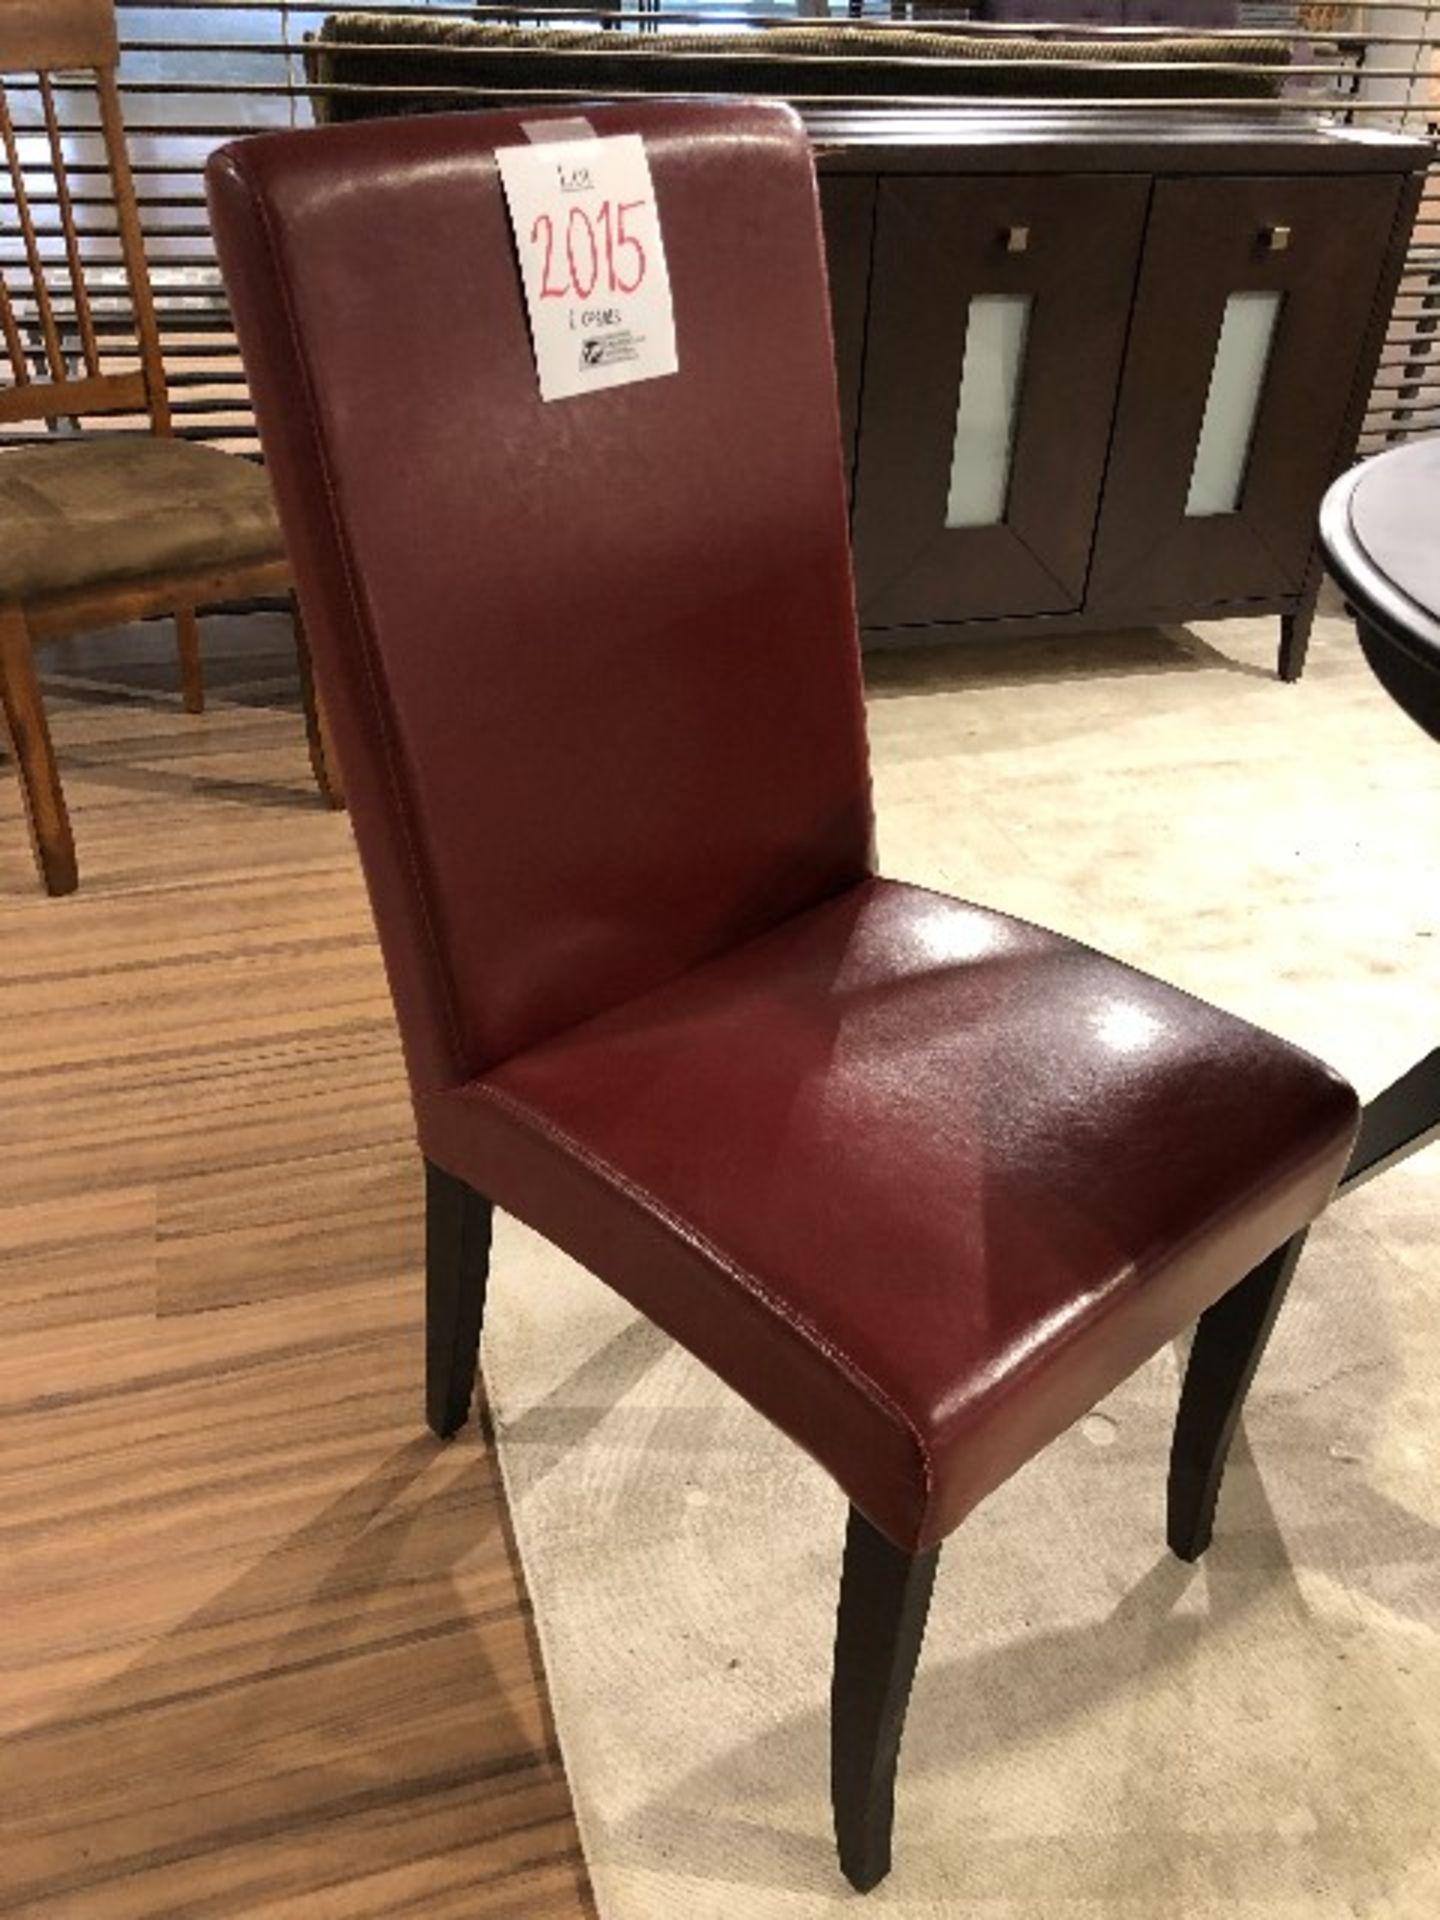 Lot 2015 - Parsons chairs, red, 2 pcs